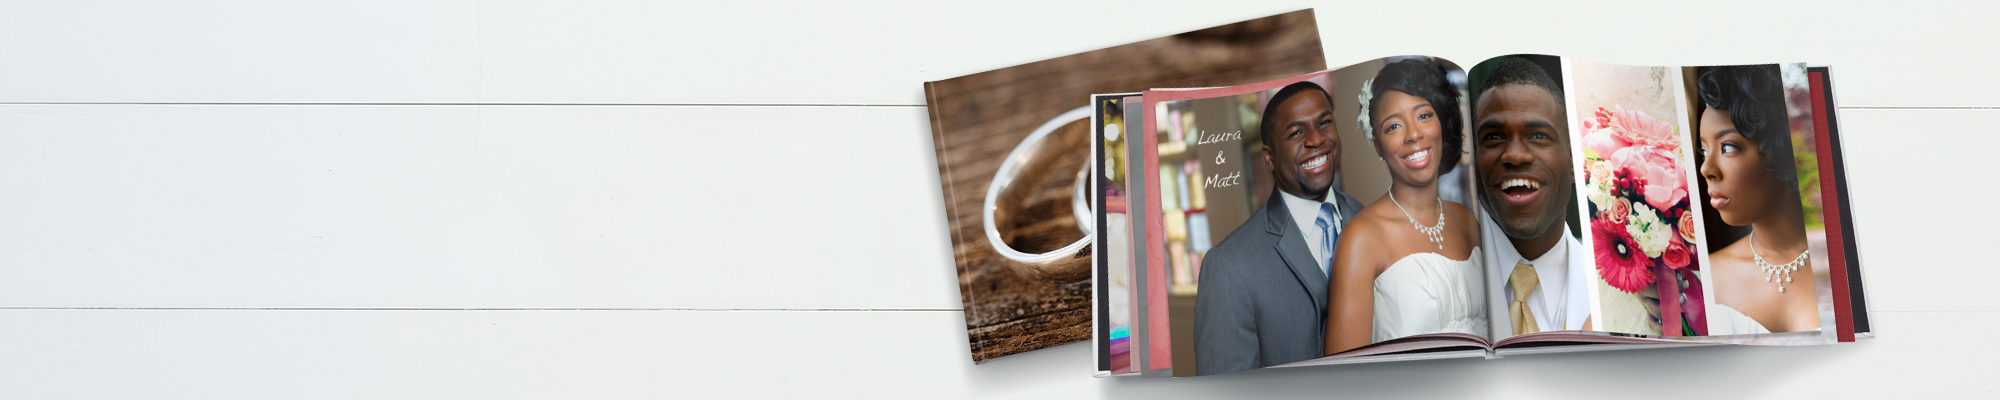 Wedding Photo Books : Your big day deserves a book this beautiful - celebrate your special day by creating a stunning photo book